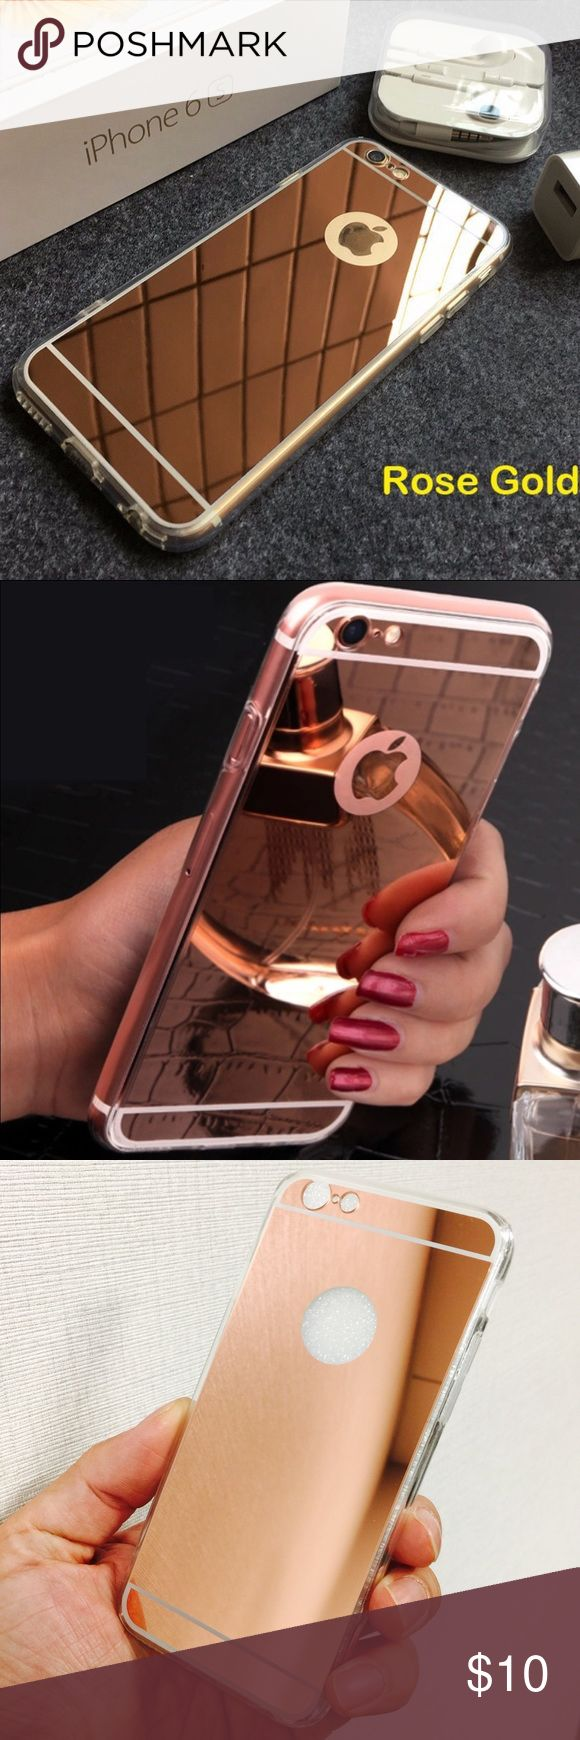 """iPhone 6+/s+ Fashion Rose Gold mirror case iPhone 6+/s+ Fashion Rose Gold mirror case Fashion cute mirror style shock-resistance Rose Gold HD mirror case for Apple iPhone 6 Plus / 6s Plus.  Brand new case on sale. Compatible size: Apple iPhone 6 Plus / 6s Plus, 5.5"""" Color: Rose Gold Accessories"""